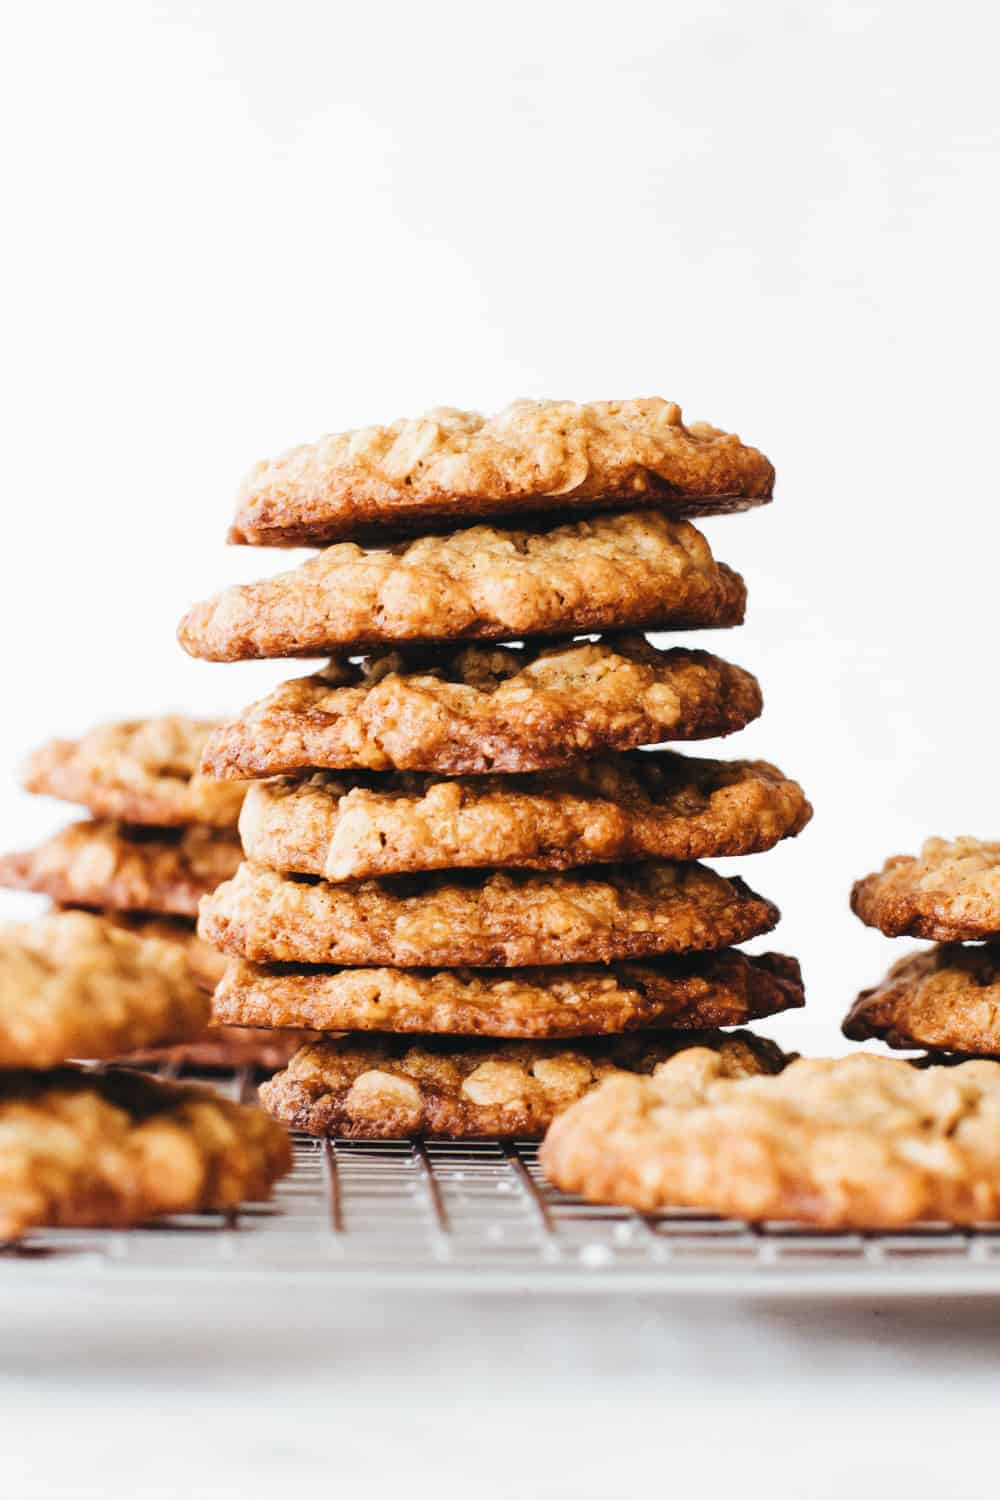 Homemade Oatmeal Cream Pies are perfectly soft and delicious